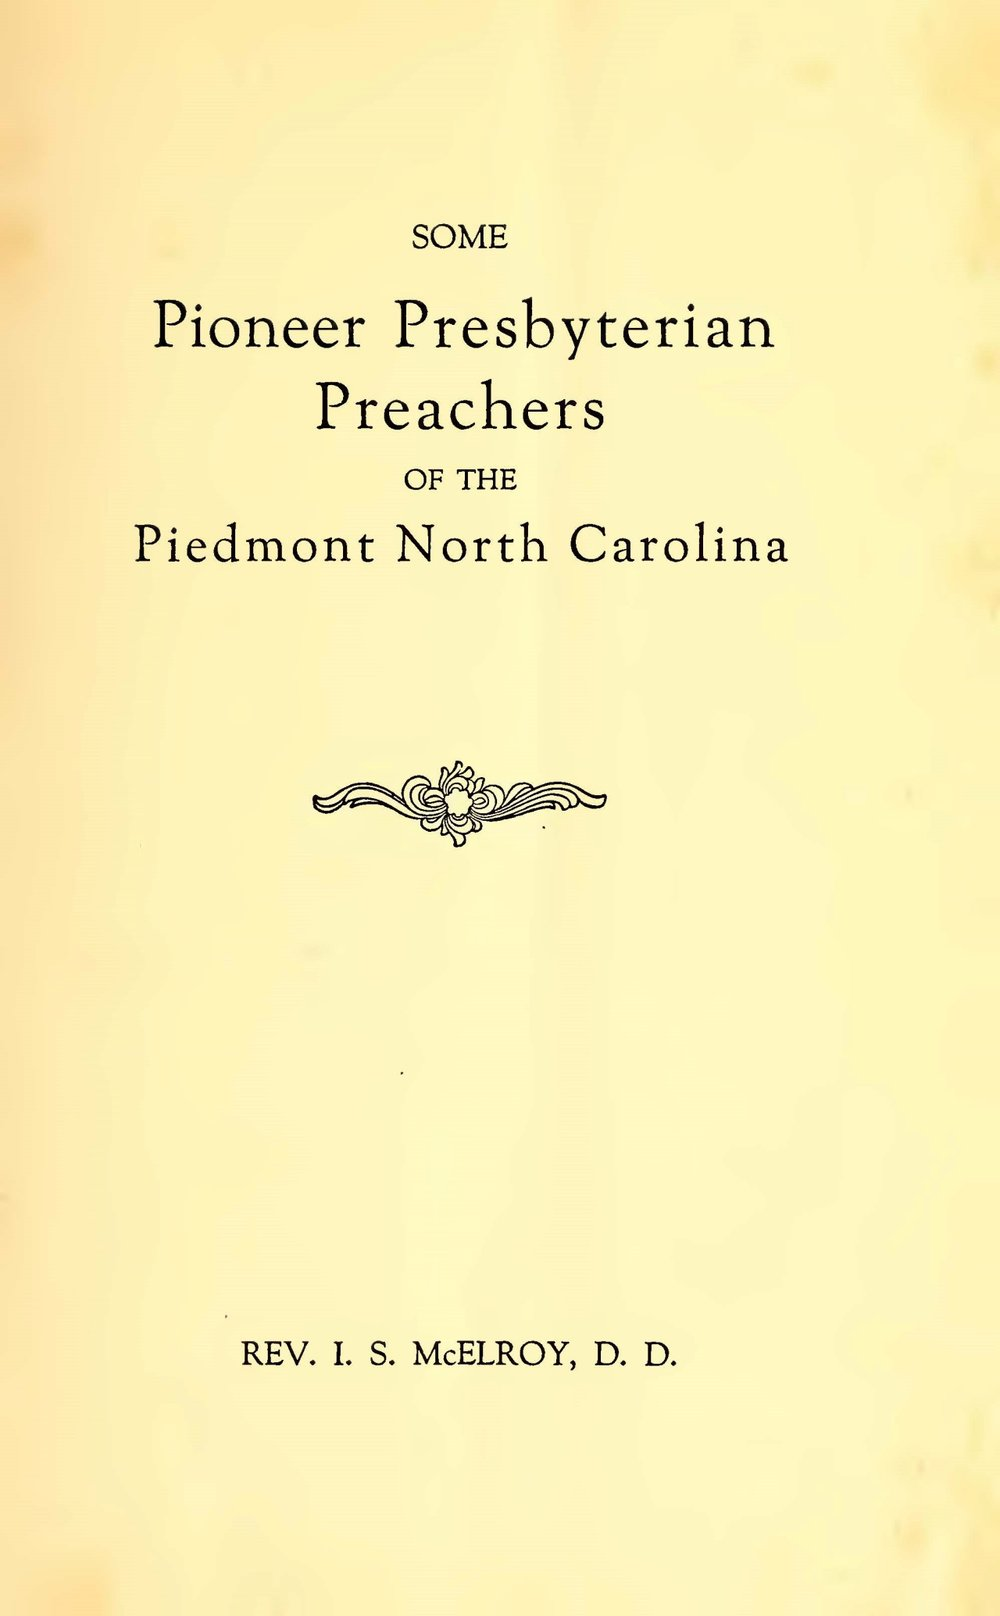 McElroy, Isaac Stuart, Some Pioneer Presbyterian Preachers in Piedmont North Carolina Title Page.jpg